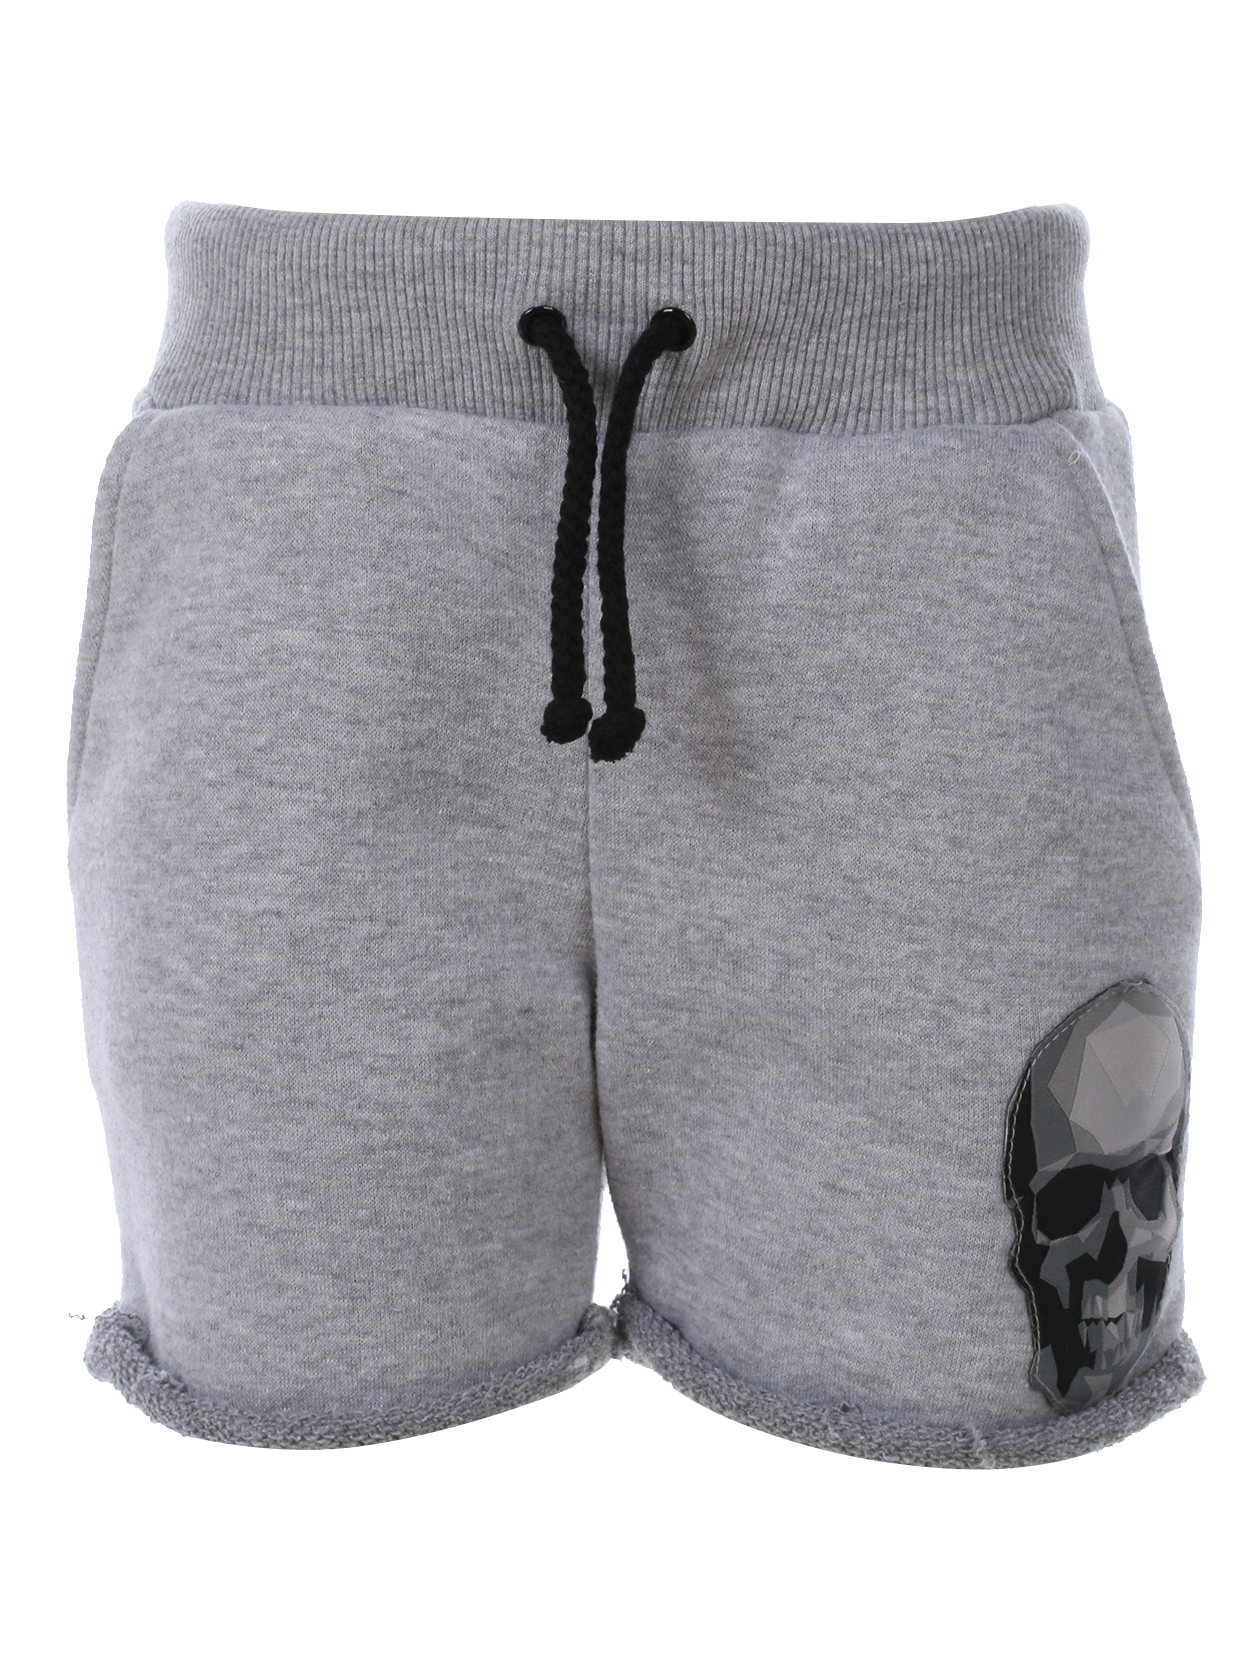 Kids shorts SkullKids shorts by Black Star Wear. Knee length, lacing, regular waist, side pockets, raw cut. 100% natural cotton. Low poly skull patch on the left side. Avaliable in gray.<br><br>size: 5-6 years<br>color: Grey<br>gender: unisex